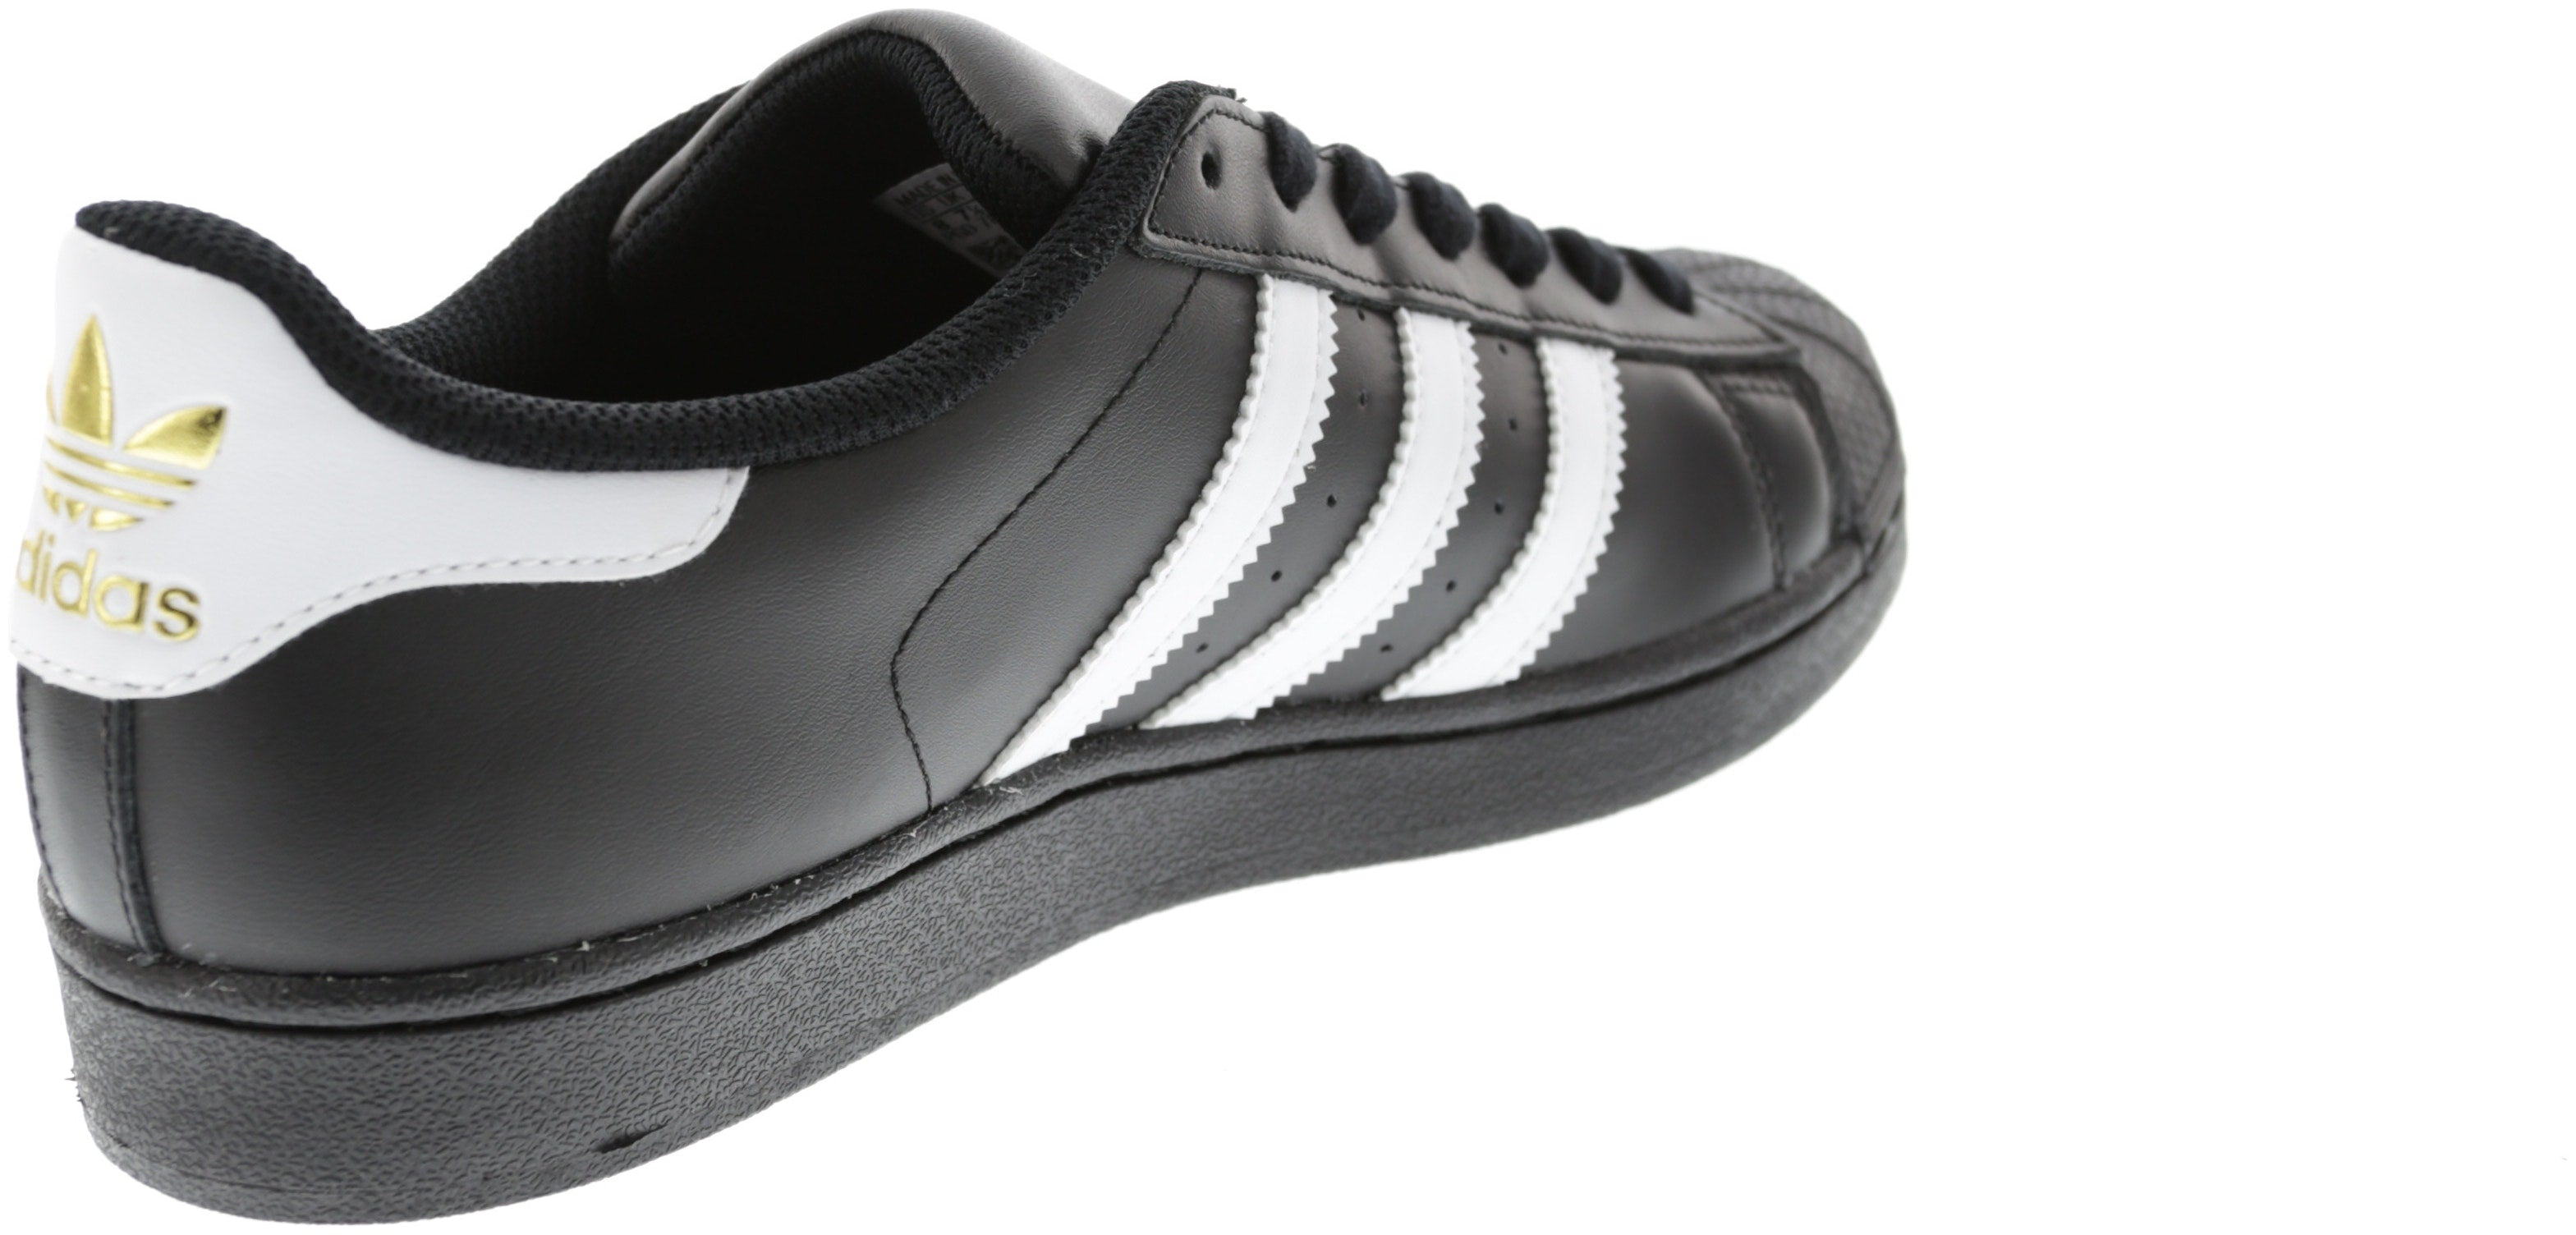 competitive price dd6d3 ab7bd New Men s Adidas Superstar Foundation Shoe Black white Footwear Sneakers  Shoes R   eBay